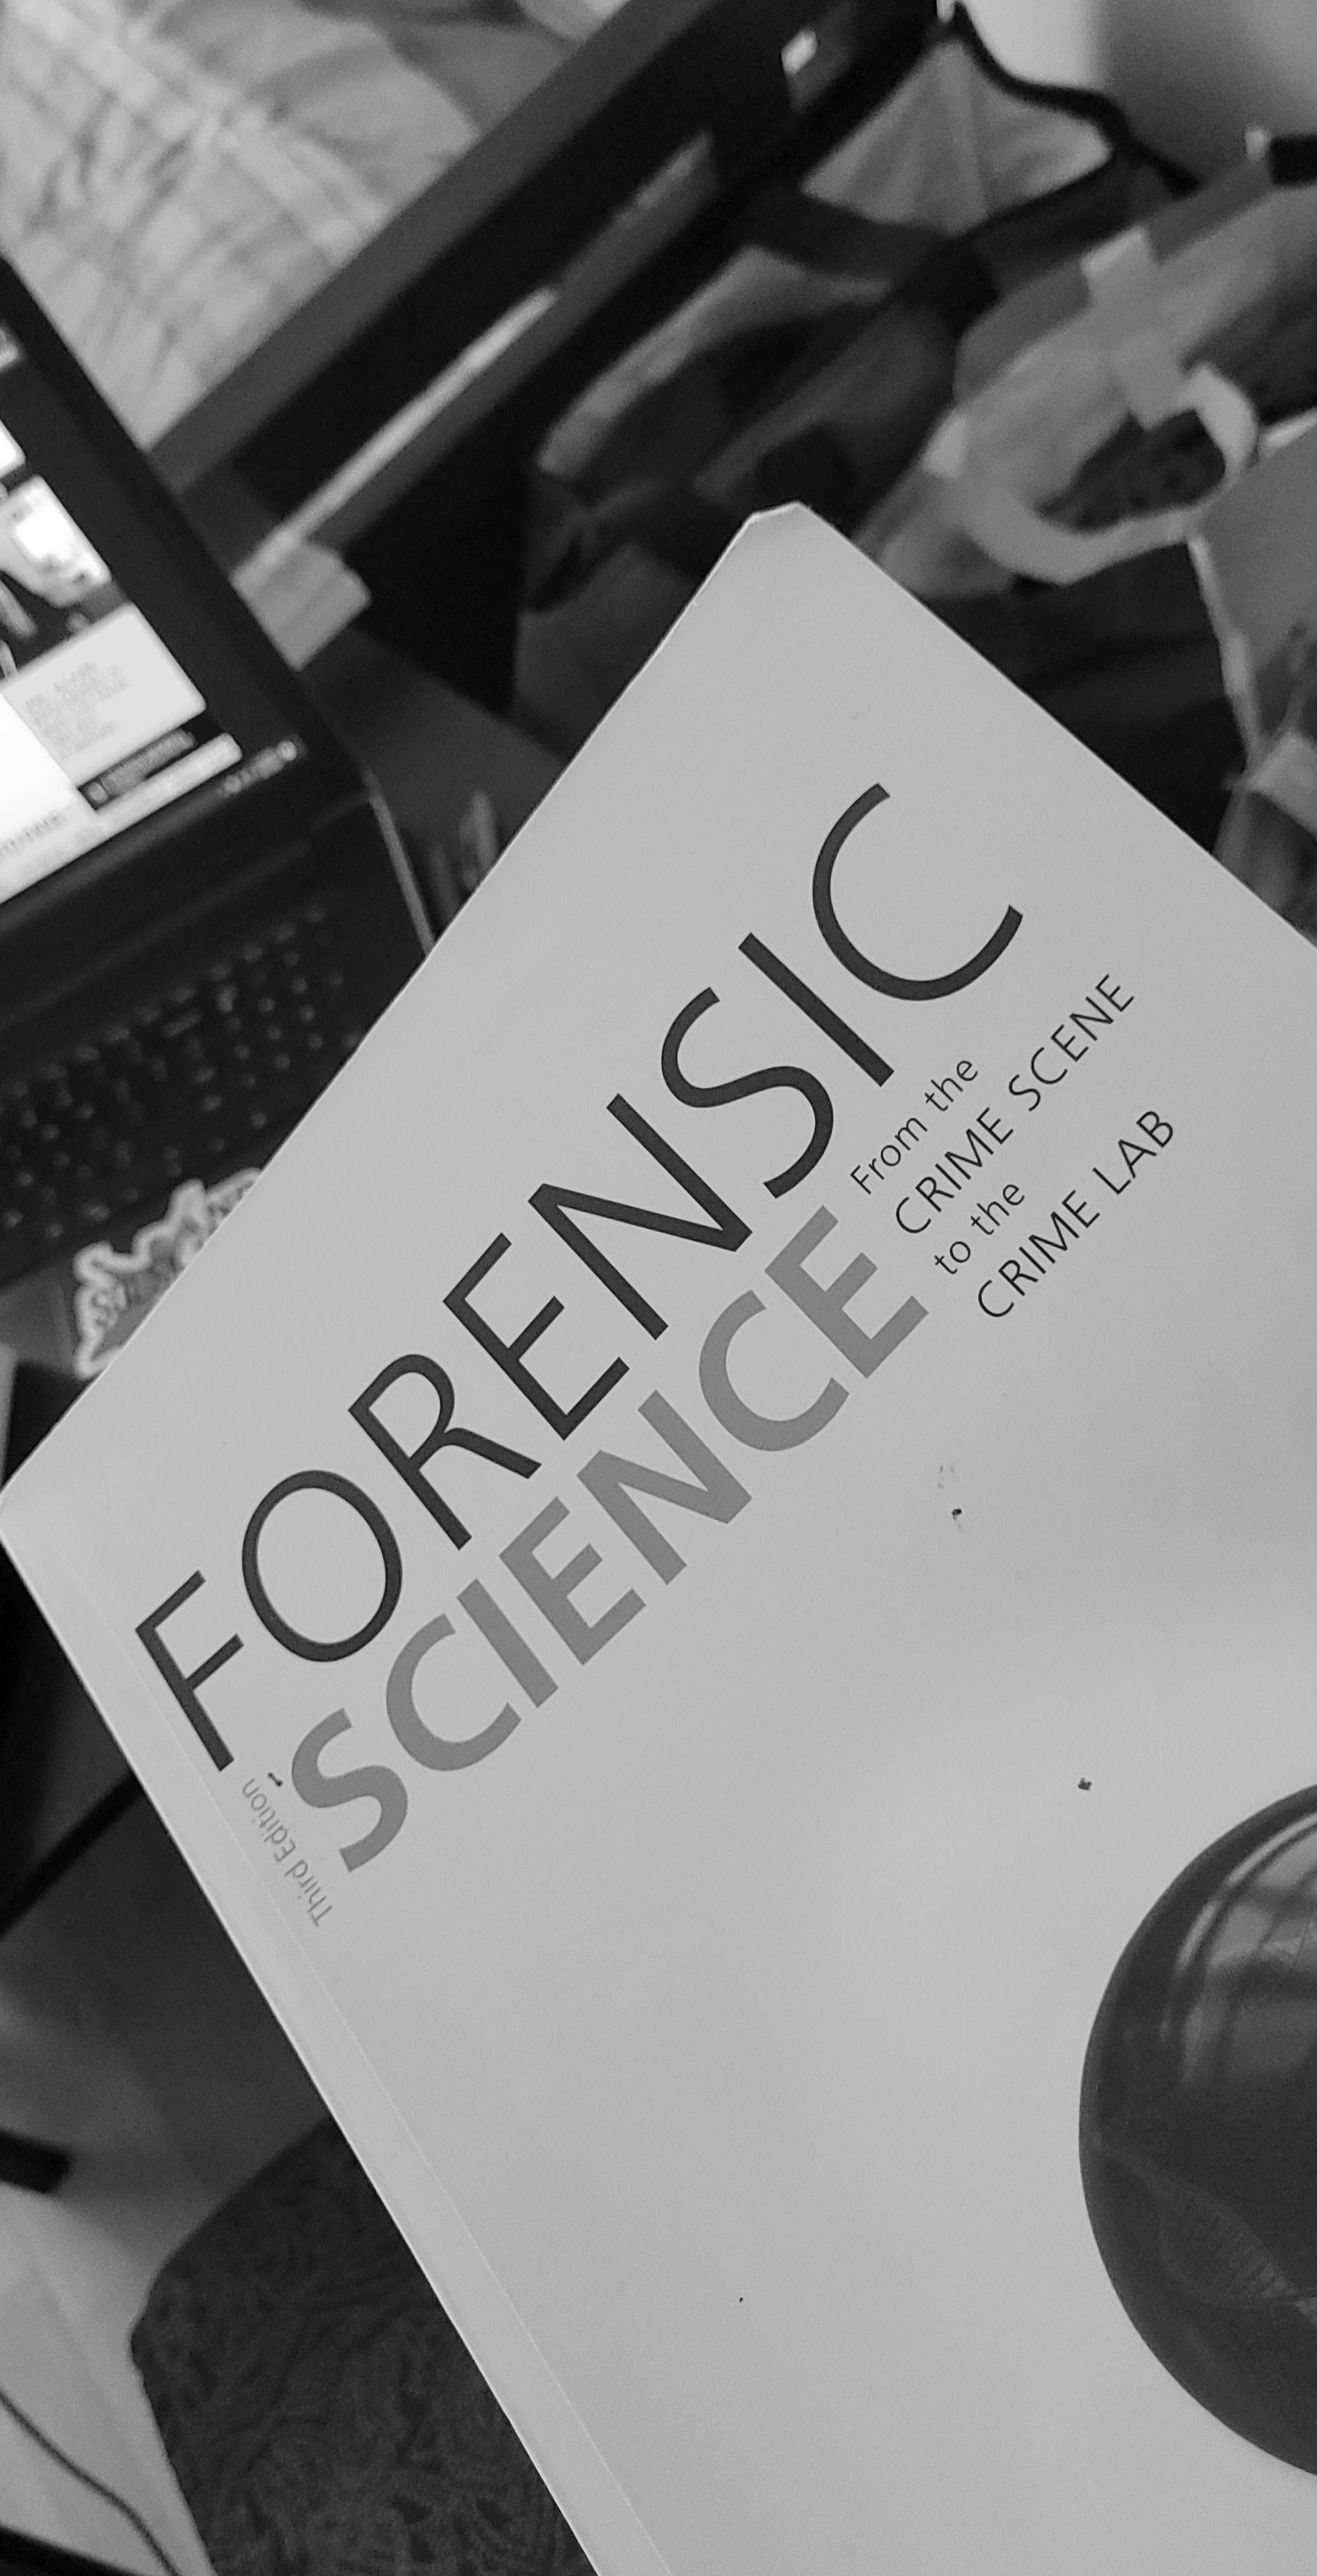 The Forensic Science textbook that I consult for information.